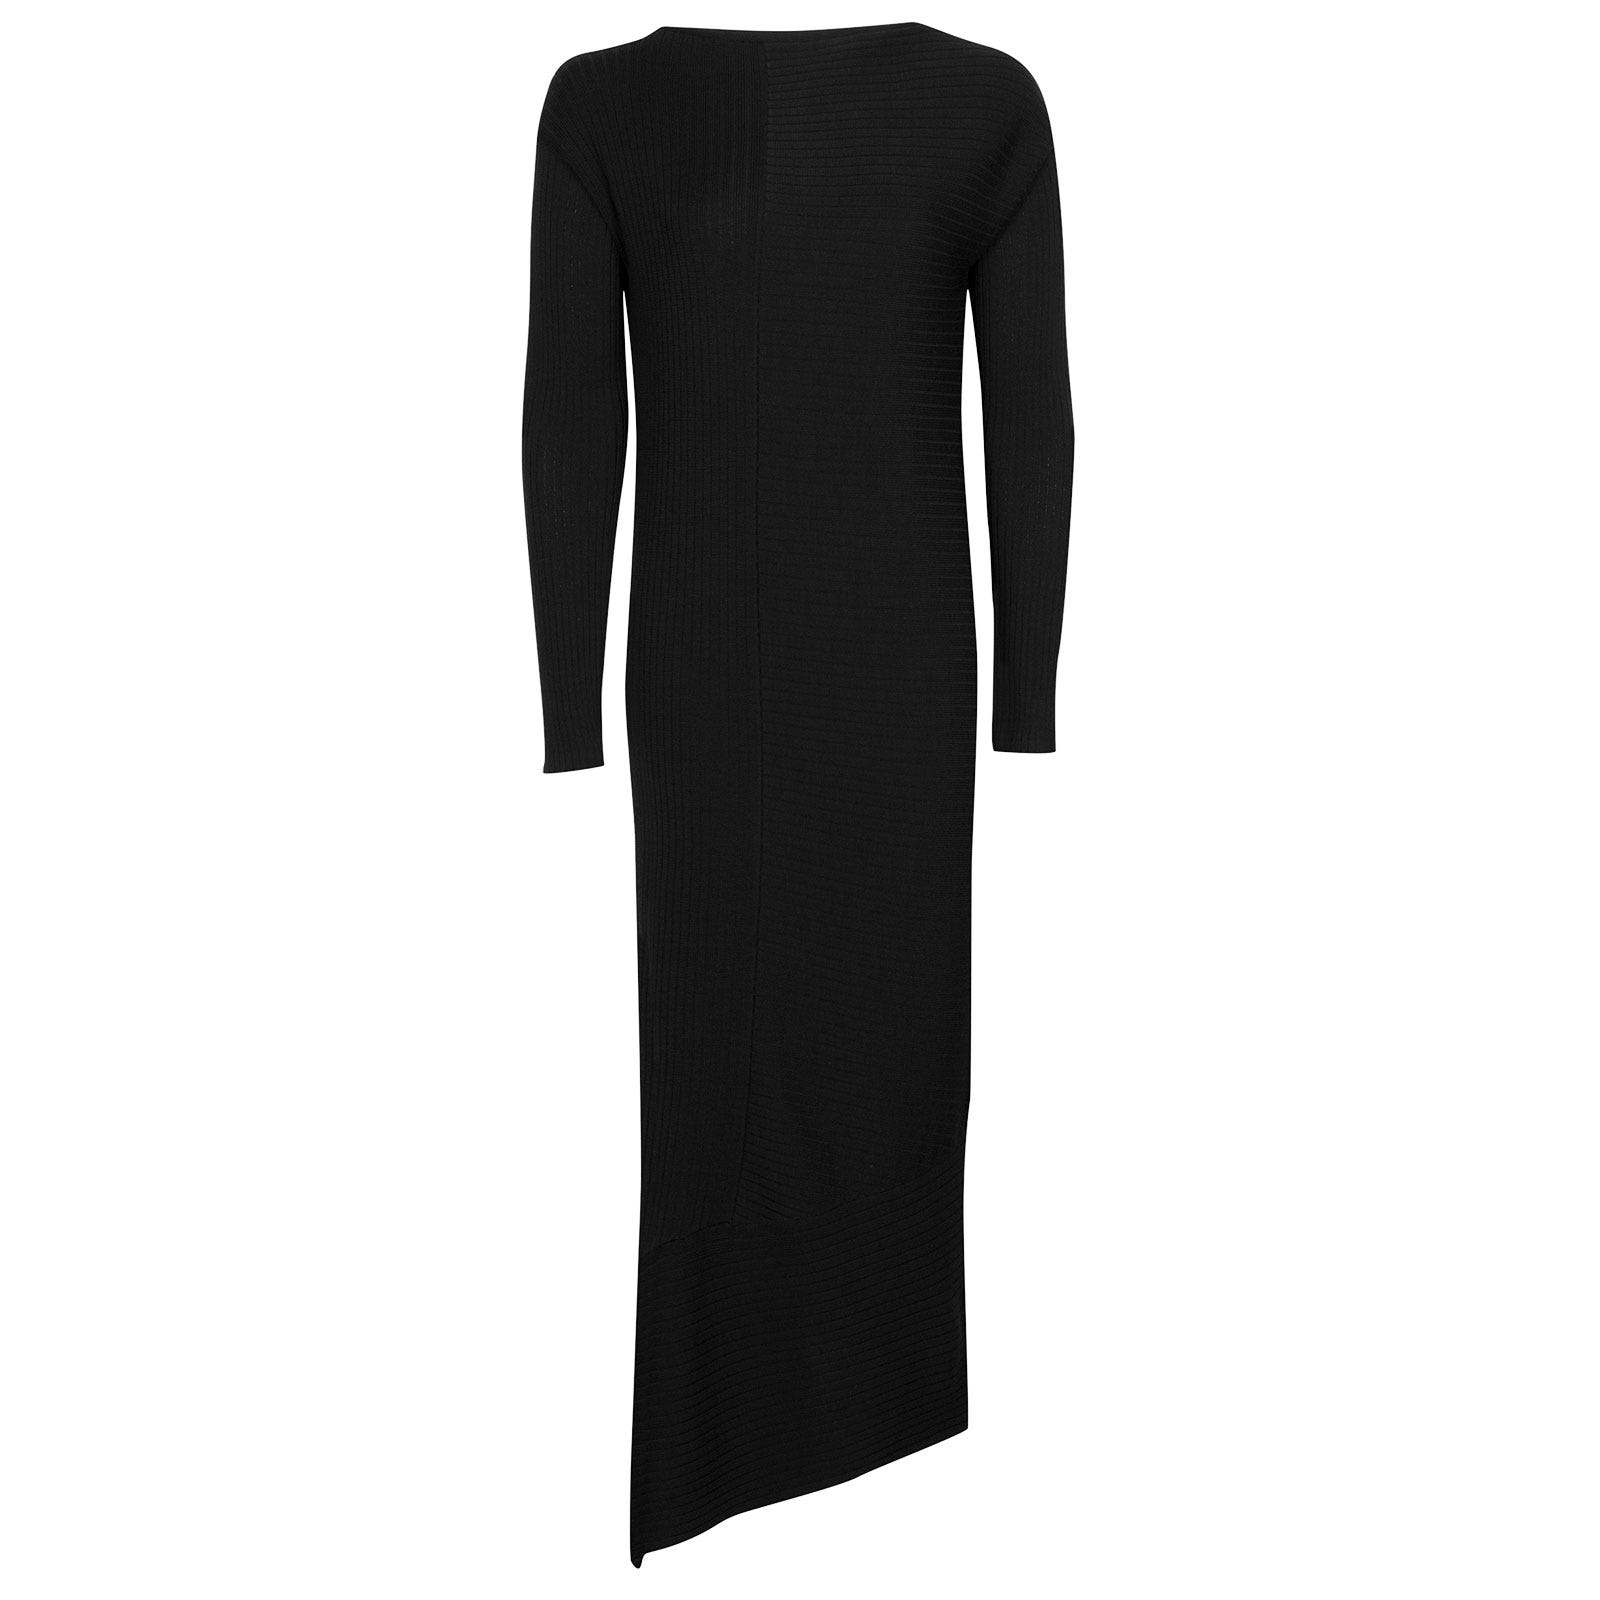 John Smedley Elion Merino Wool Dress in Black-S